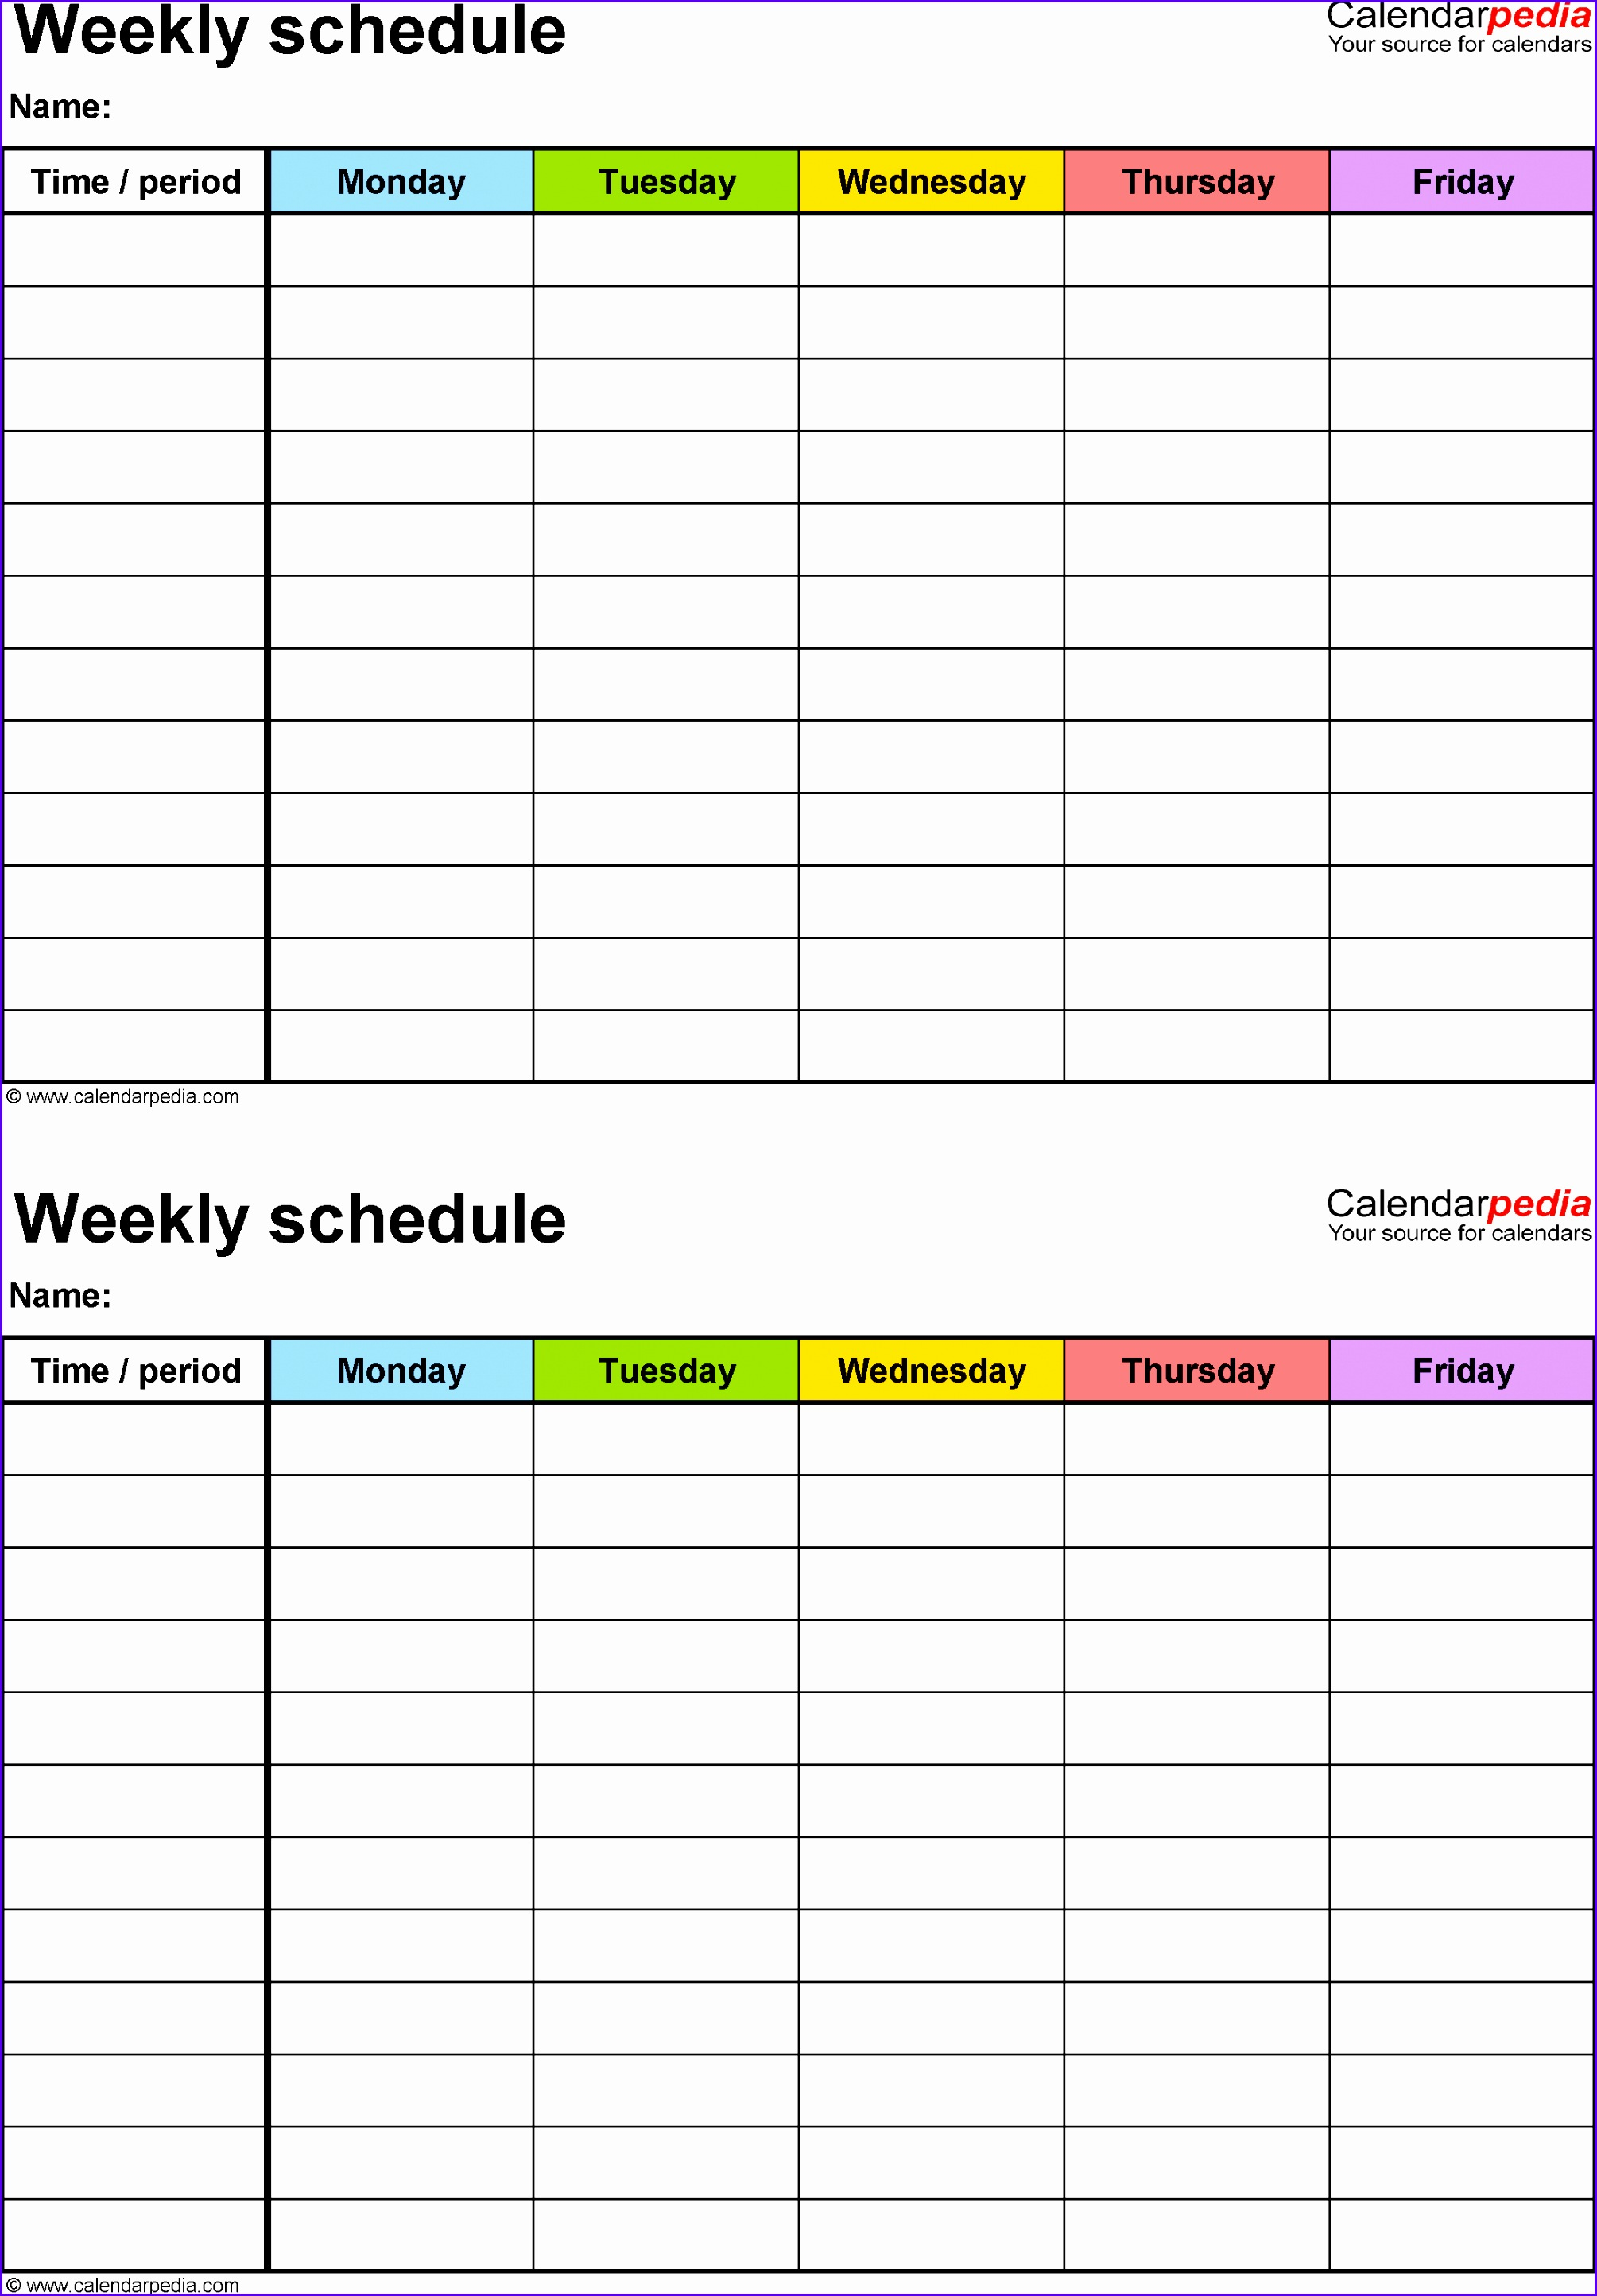 Examples Excel Template Weekly Schedule Gsota Unique Free Weekly Schedule Templates for Excel 18 Templates 22083140